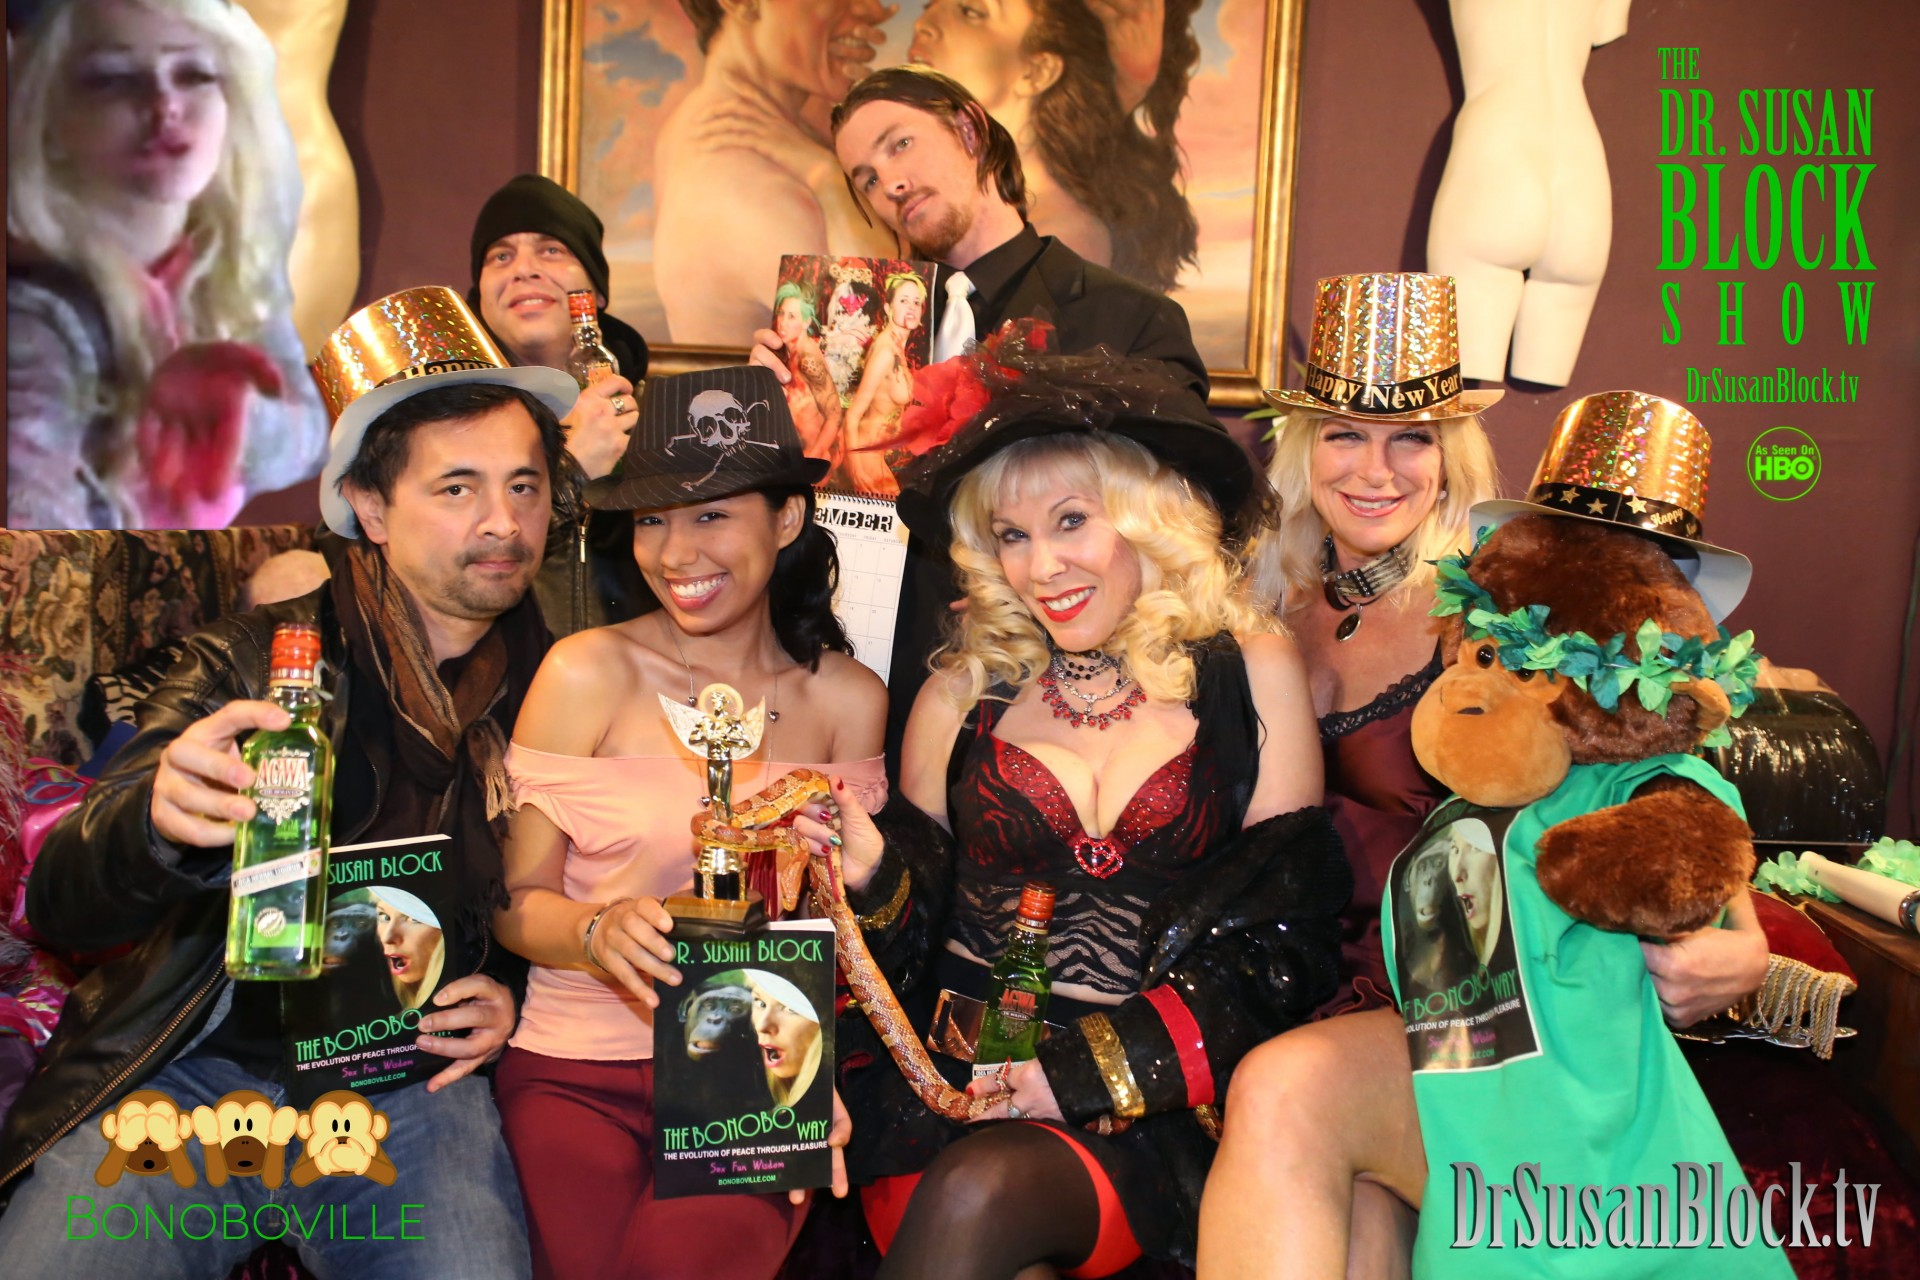 "The DrSuzy.Tv Awards: Amor Hilton, Anthony Winn, Jack Nice, Goddess Maya with ""SUZY"" Award, and The Bonobo Way, Dr. Susan Block, Dark Phoenix with Unlicensed Professionals' ""Buttload O' Months"" Calender, Chelsea Demoiselle with Bonzo in Bonobo Designs T-shirt. Photo: BW"